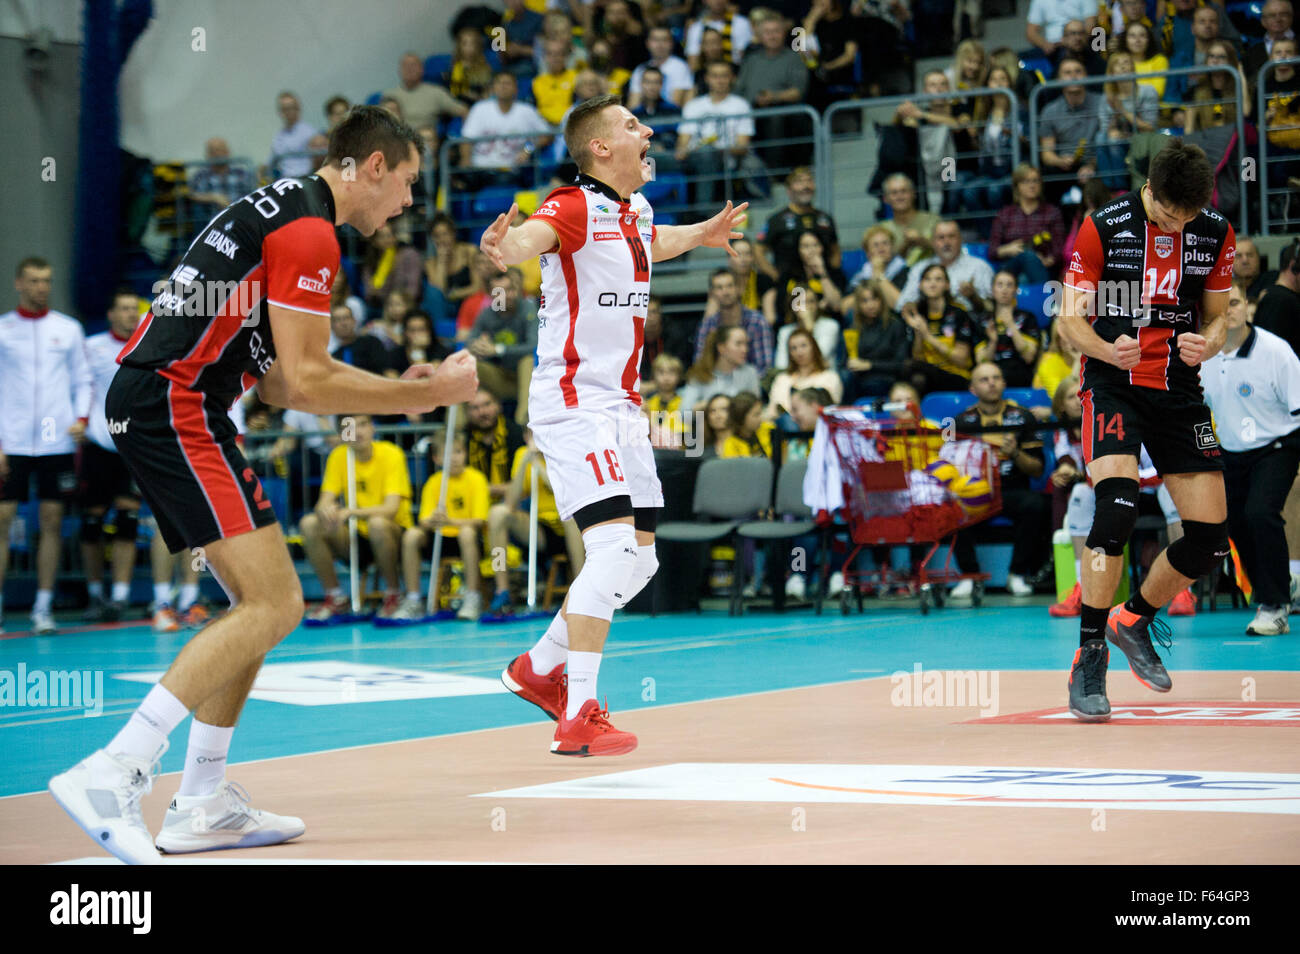 Belchatow, Poland. 11th November 2015. Team Asseco Resovia Rzeszow pictured during the game with PGE Skra Belchatow - Stock Image